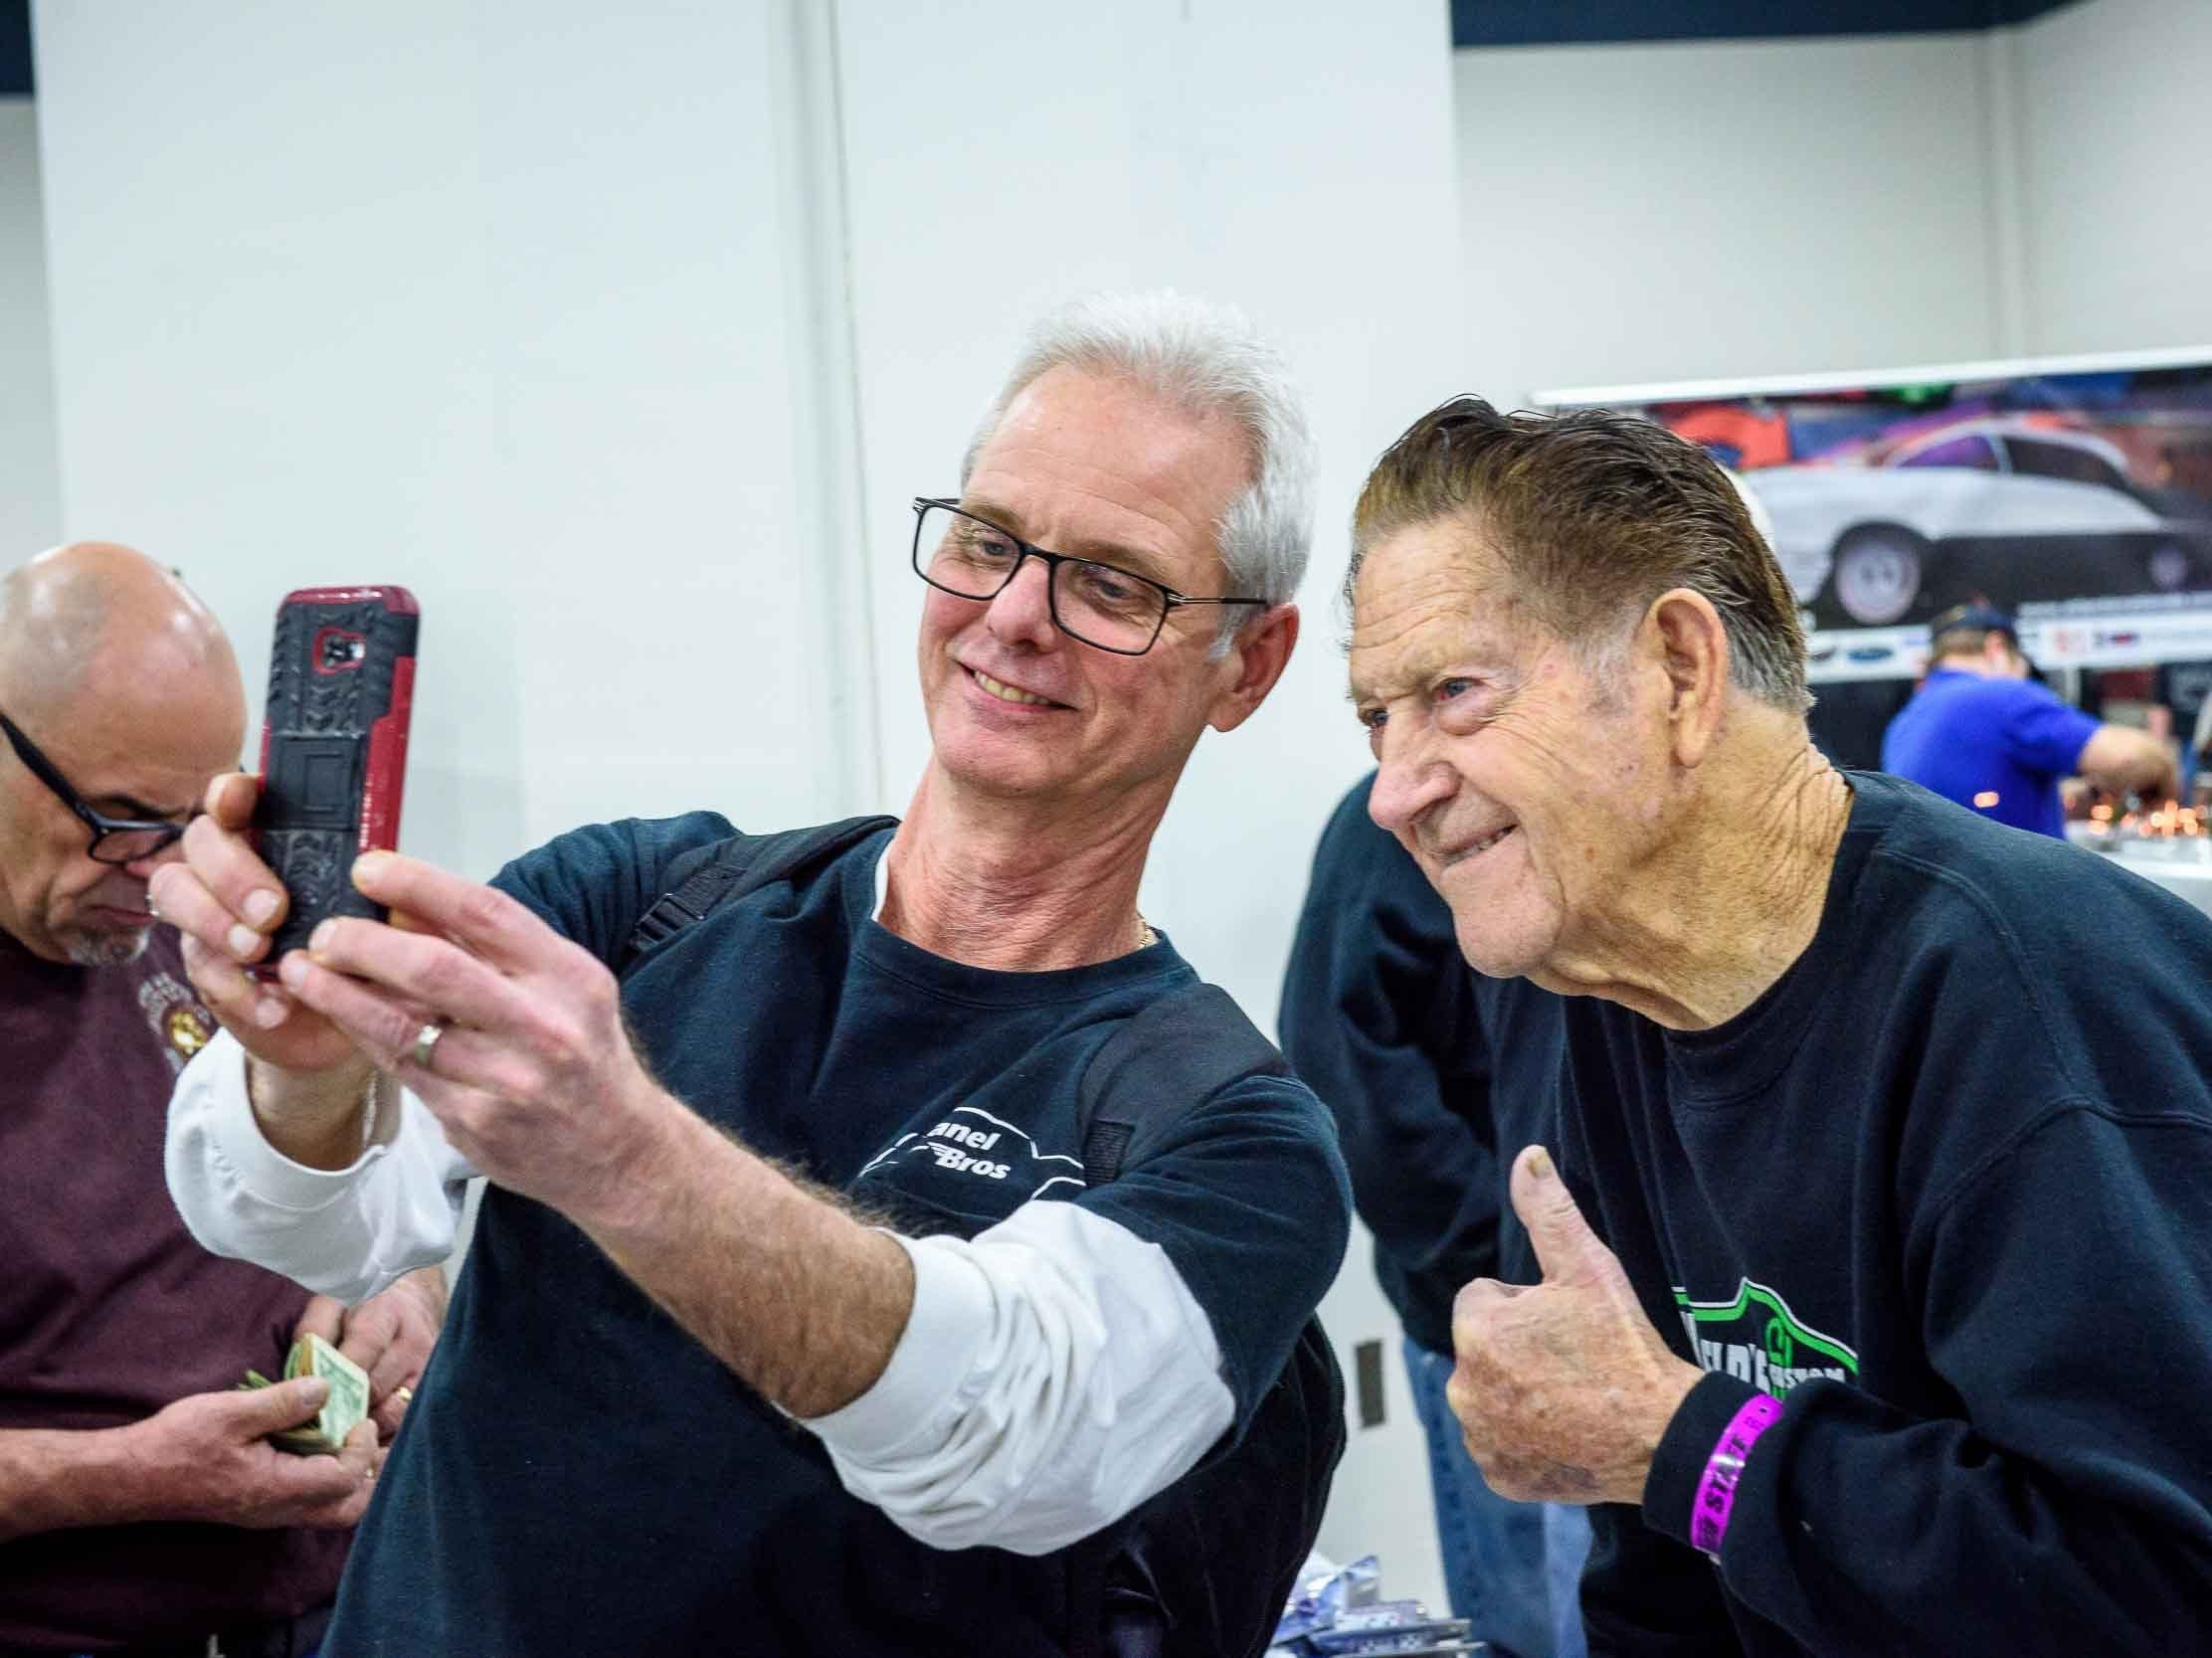 Roy Maitland drove 4 hours from Toronto, ON to attend Autorama 2019 at Cobo Hall takes a selfie with Legendary car customizer Gene Winfield March 2, 2019.